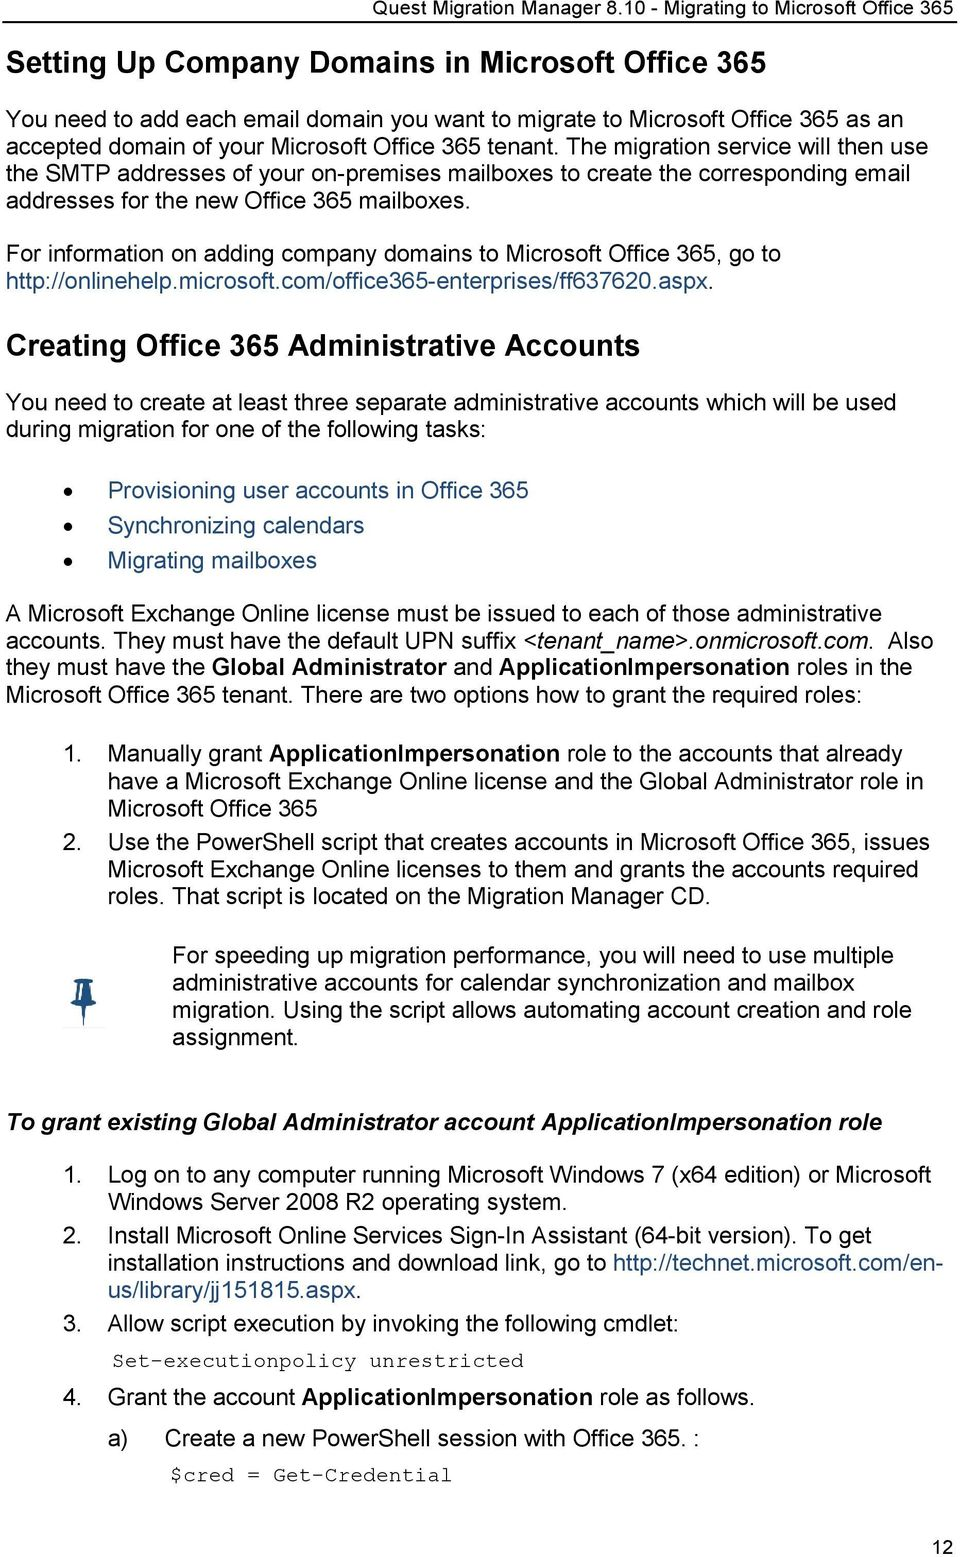 For information on adding company domains to Microsoft Office 365, go to http://onlinehelp.microsoft.com/office365-enterprises/ff637620.aspx.